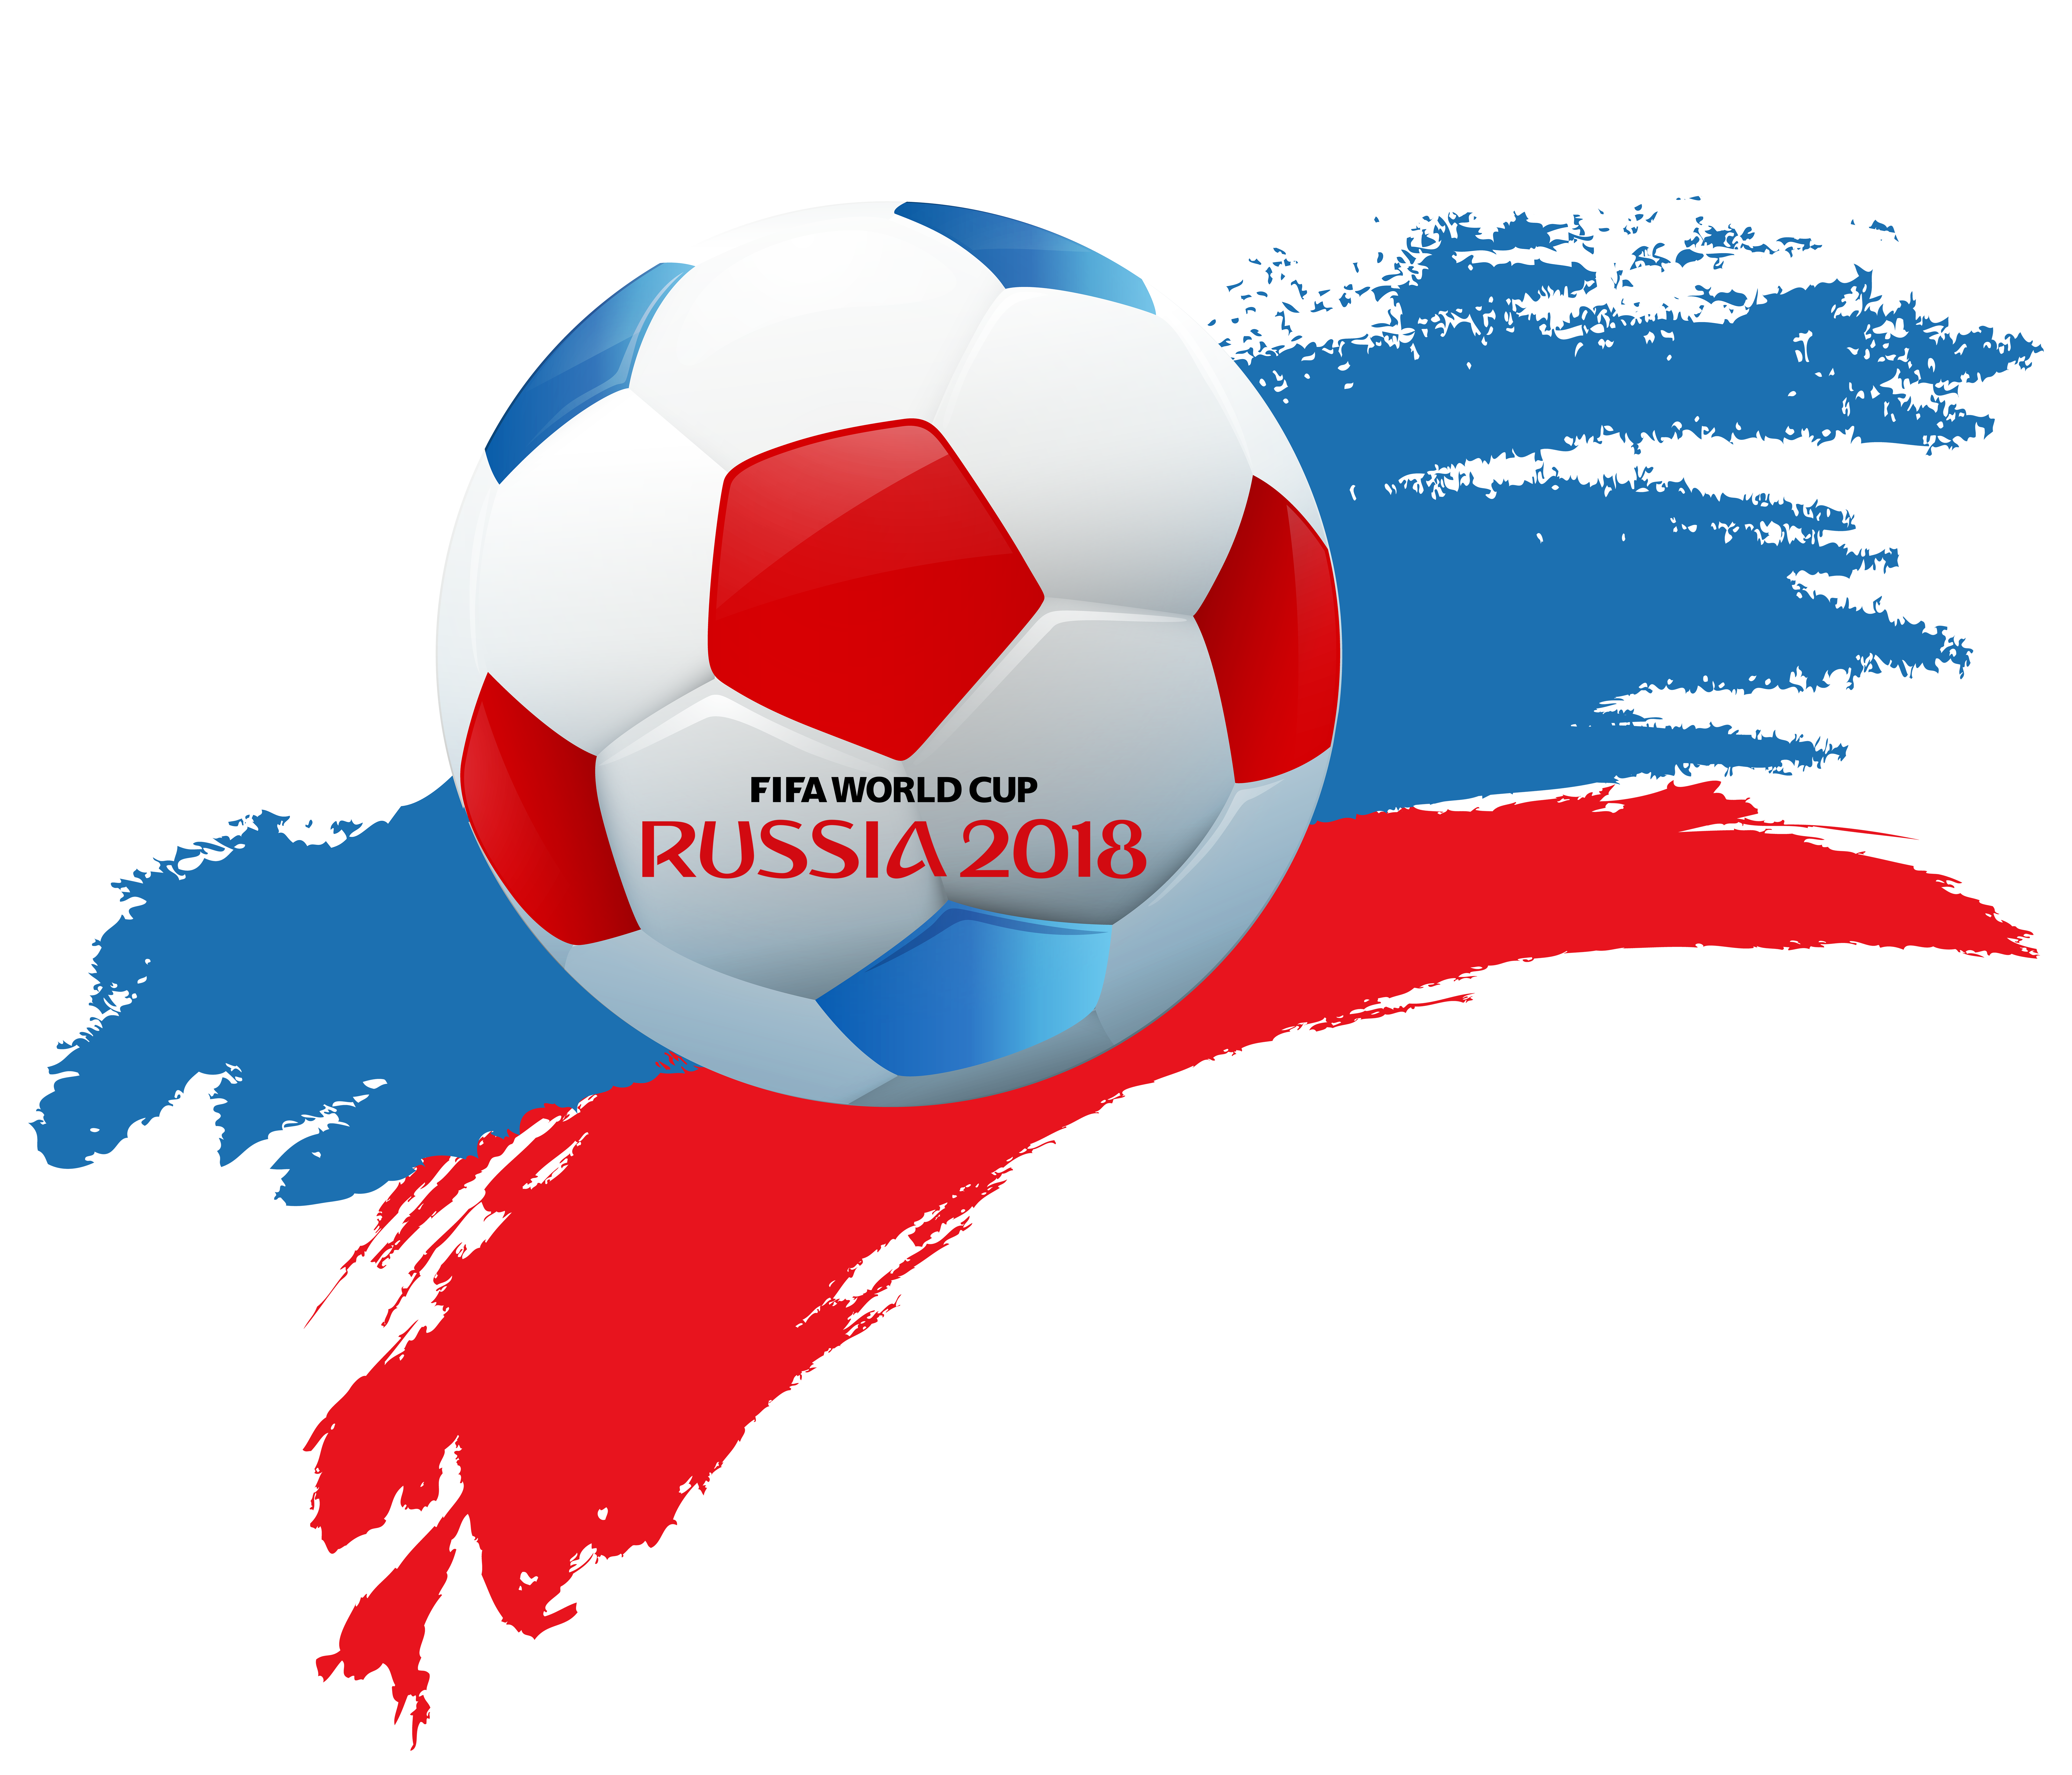 Football scarf clipart picture free World Cup Russia 8 Png High | jokingart.com World Cup 2018 Clipart picture free